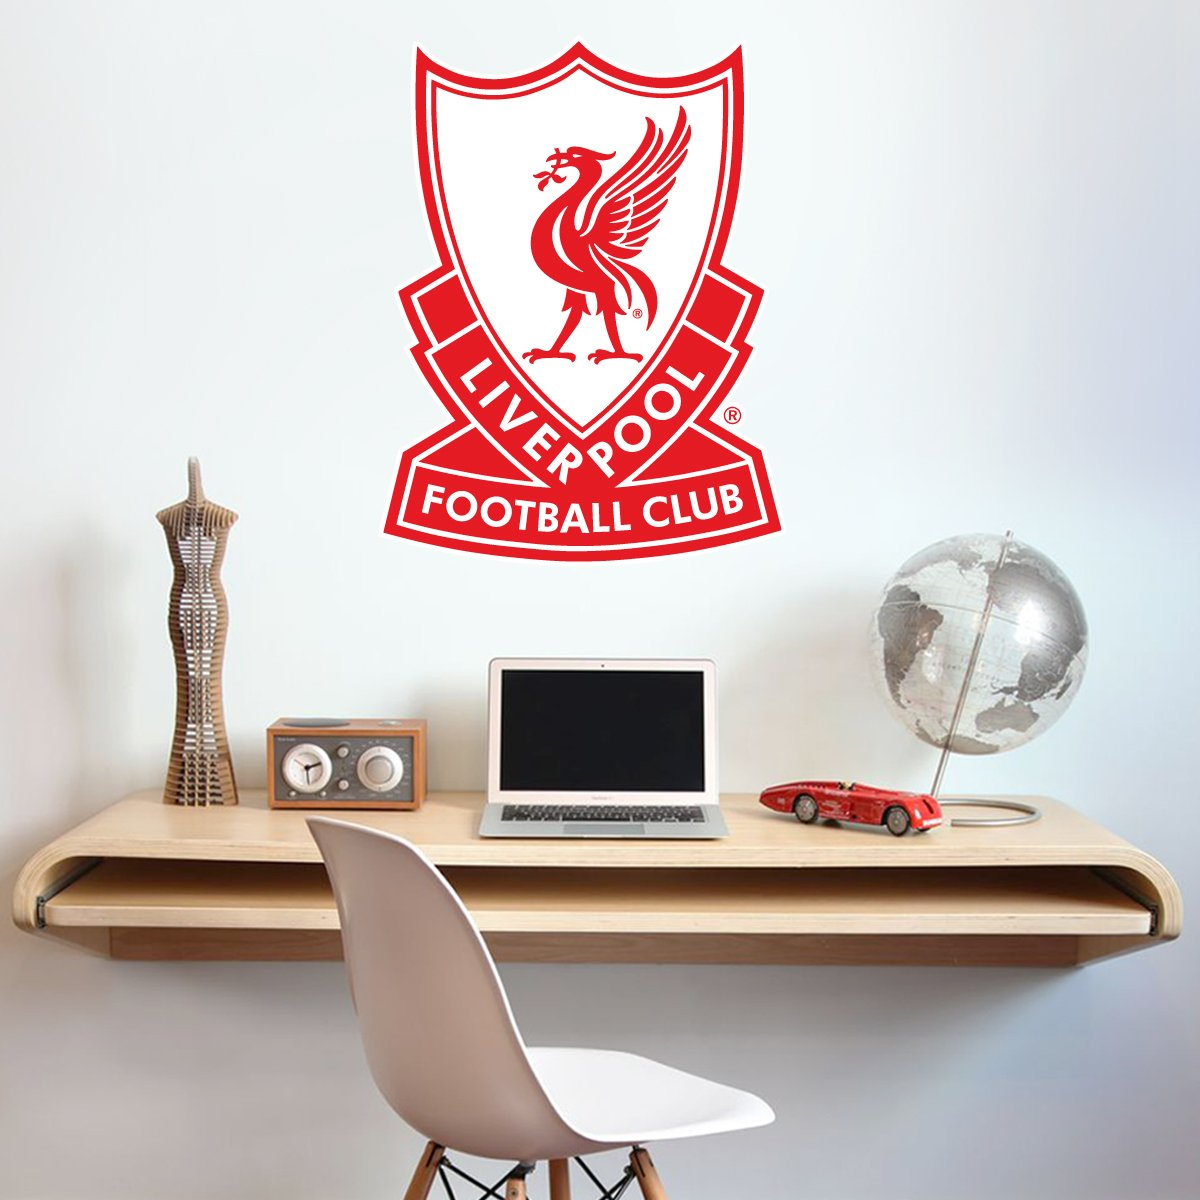 Amazon com official liverpool football club 80s retro crest wall decal lfc wall sticker set decal vinyl poster print mural 60cm height baby